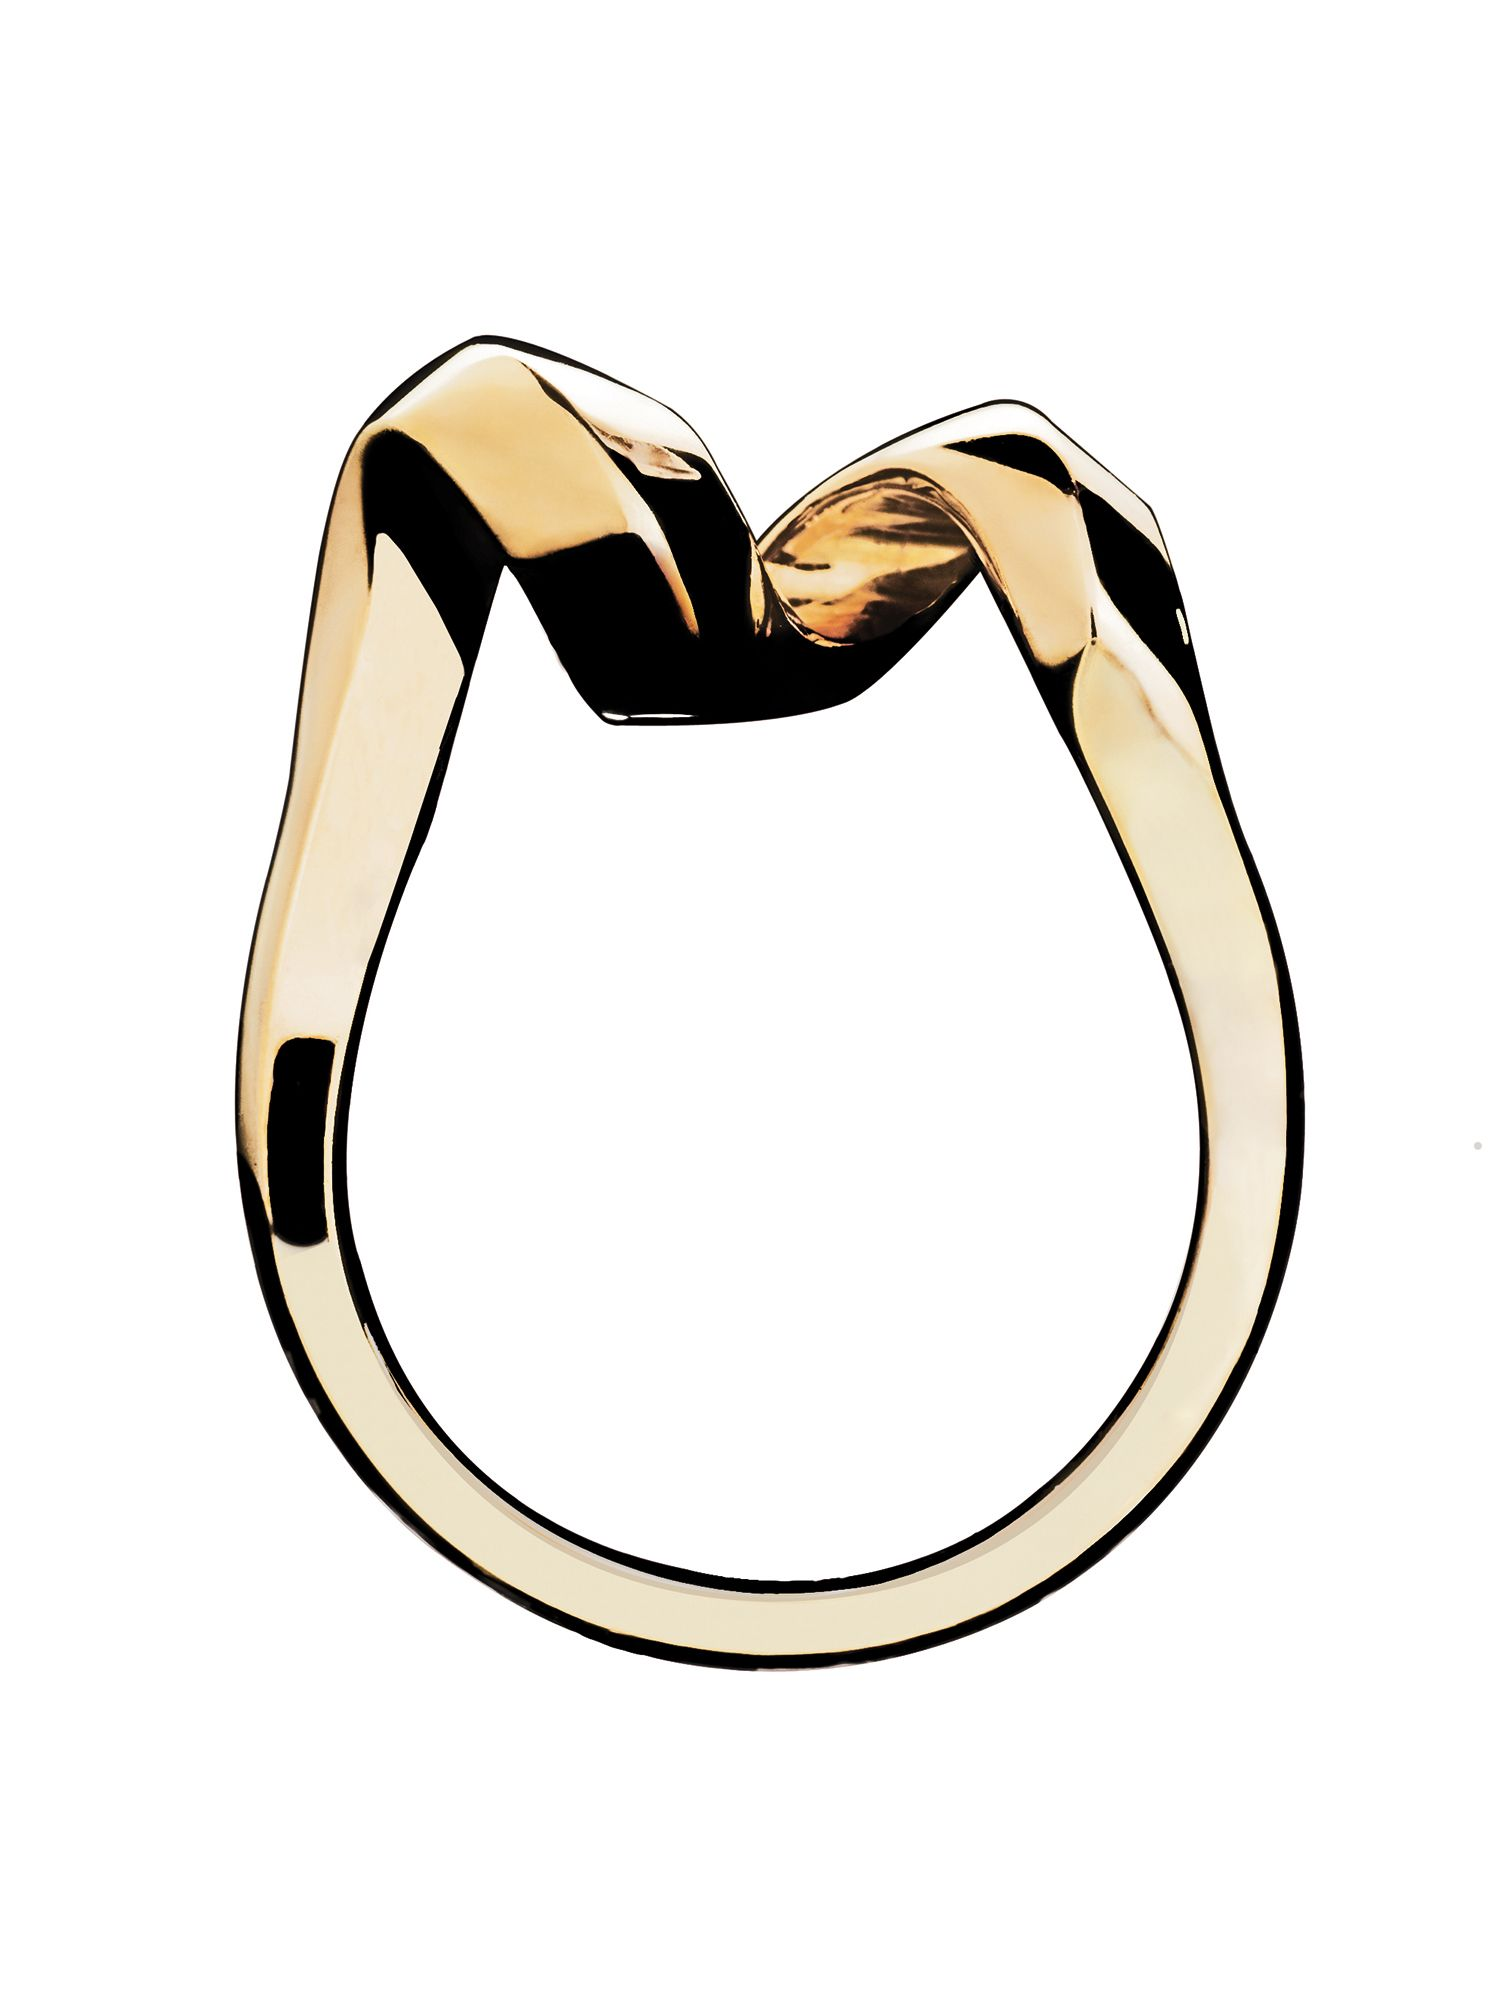 Entwine ring 18ct gold